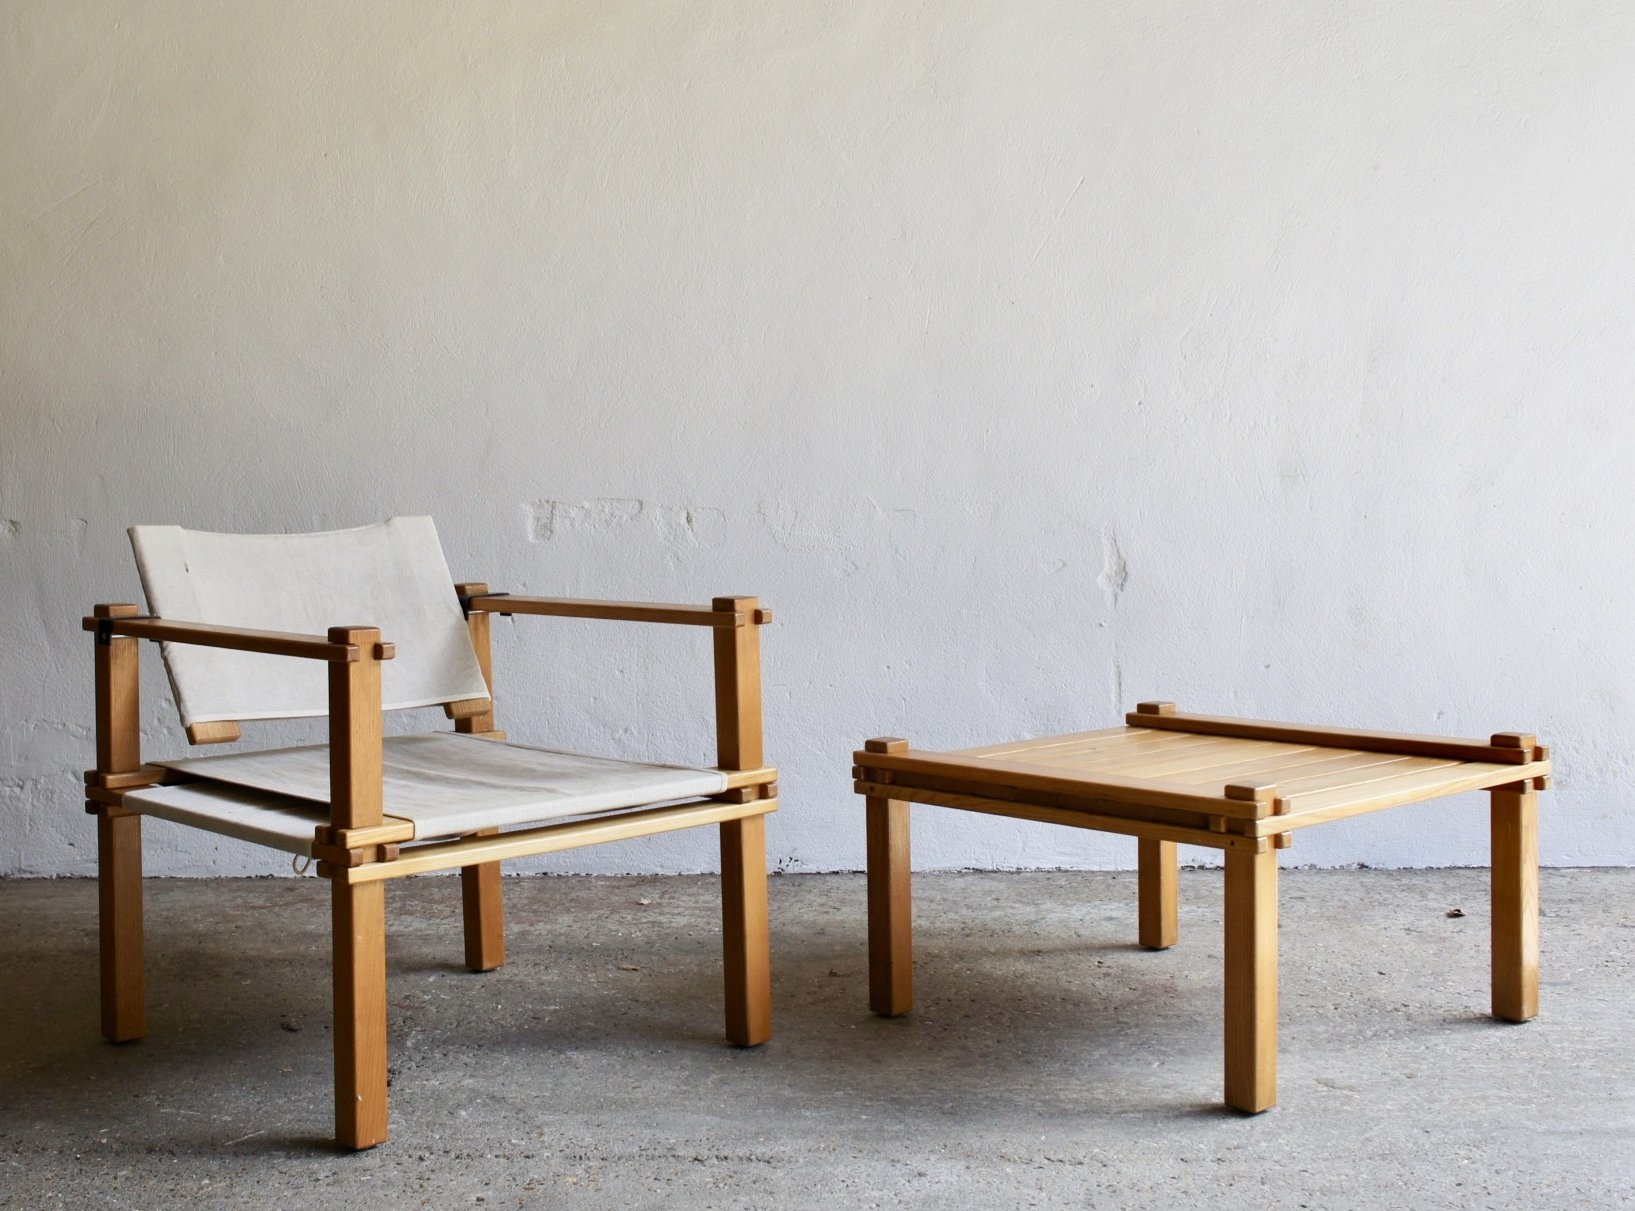 1960 S Farmer Safari Chair And Coffee Table Set By Gerd Lange For Bofinger